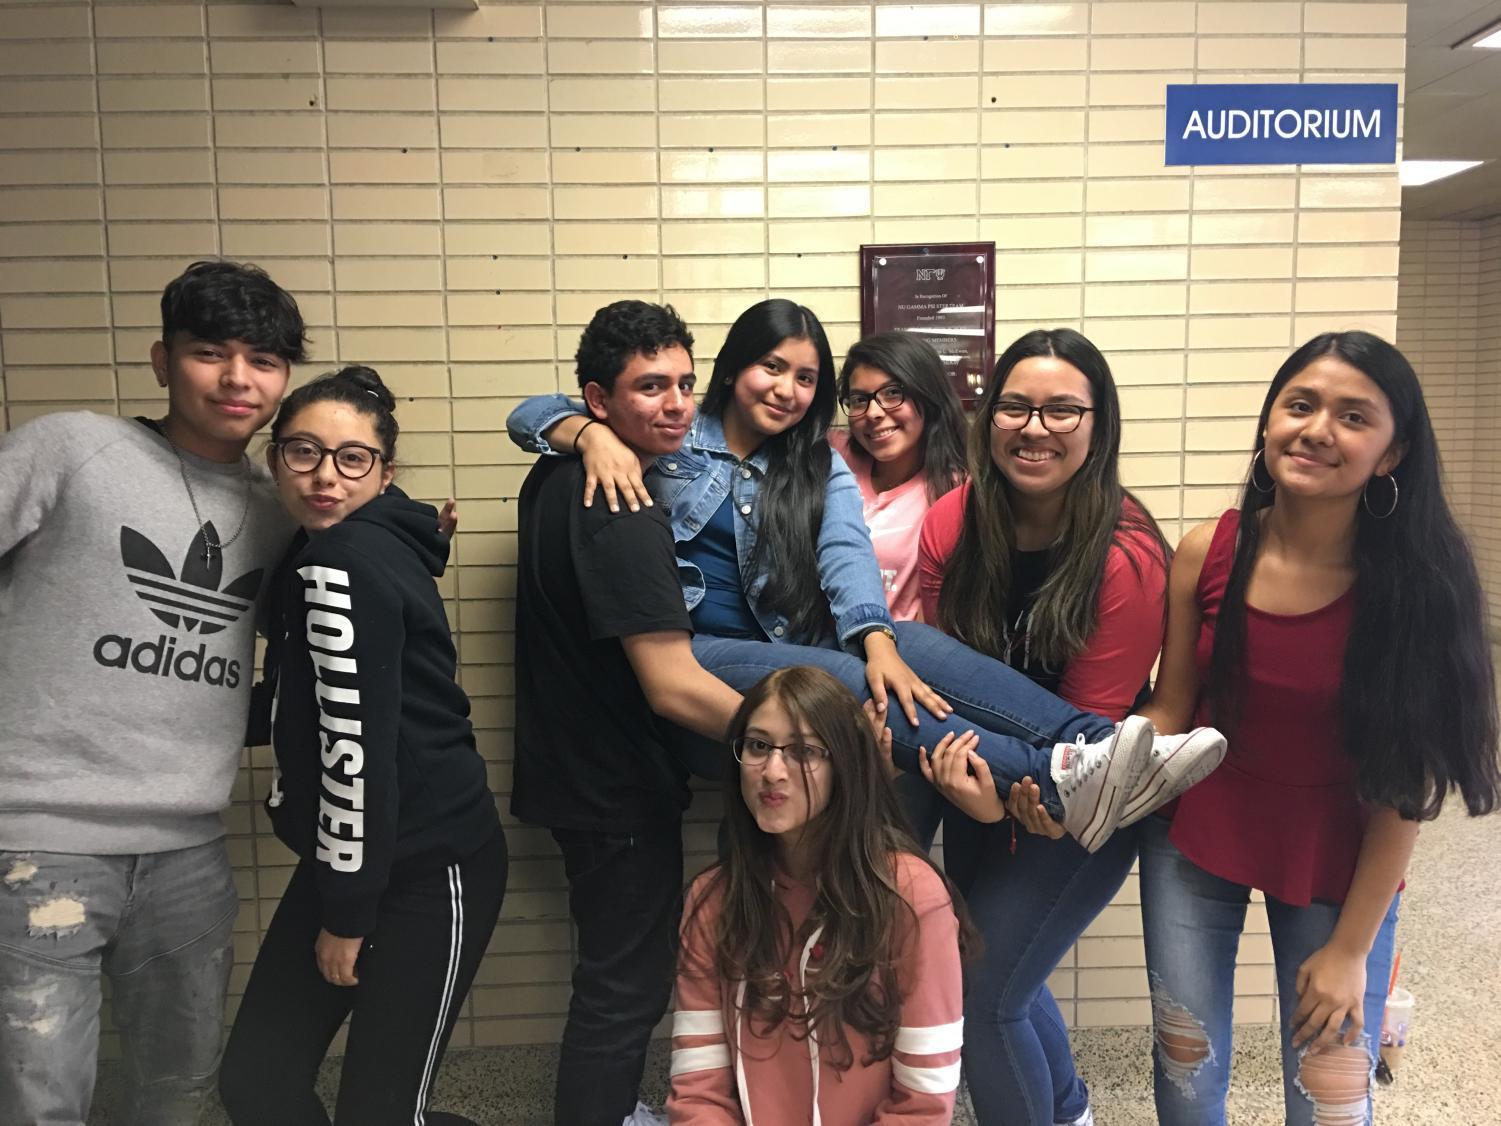 Johnna+is+also+part+of+the+Latinos+Unidos+Club.+Honoring+their+friend+Johnna%2C+her+friends+displayed+their+camaraderie+for+Johnna+and+her+enlistment+in+front+of+the+auditorium%2C+where+they+practiced+for+the+International+Festival.